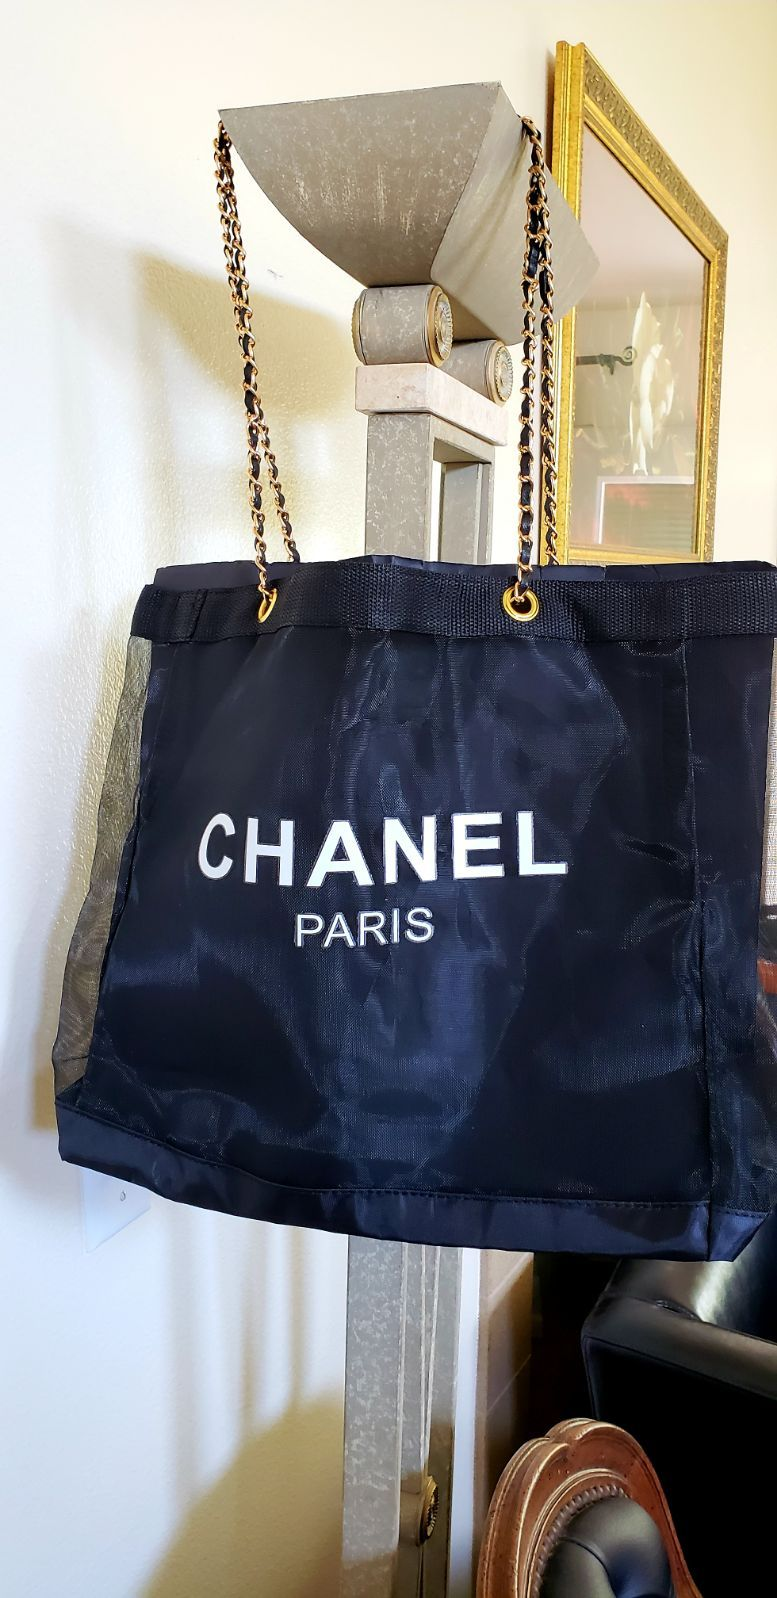 Chanel Women's Cosmetic Tote Bag.. Color Black.. Bag it's